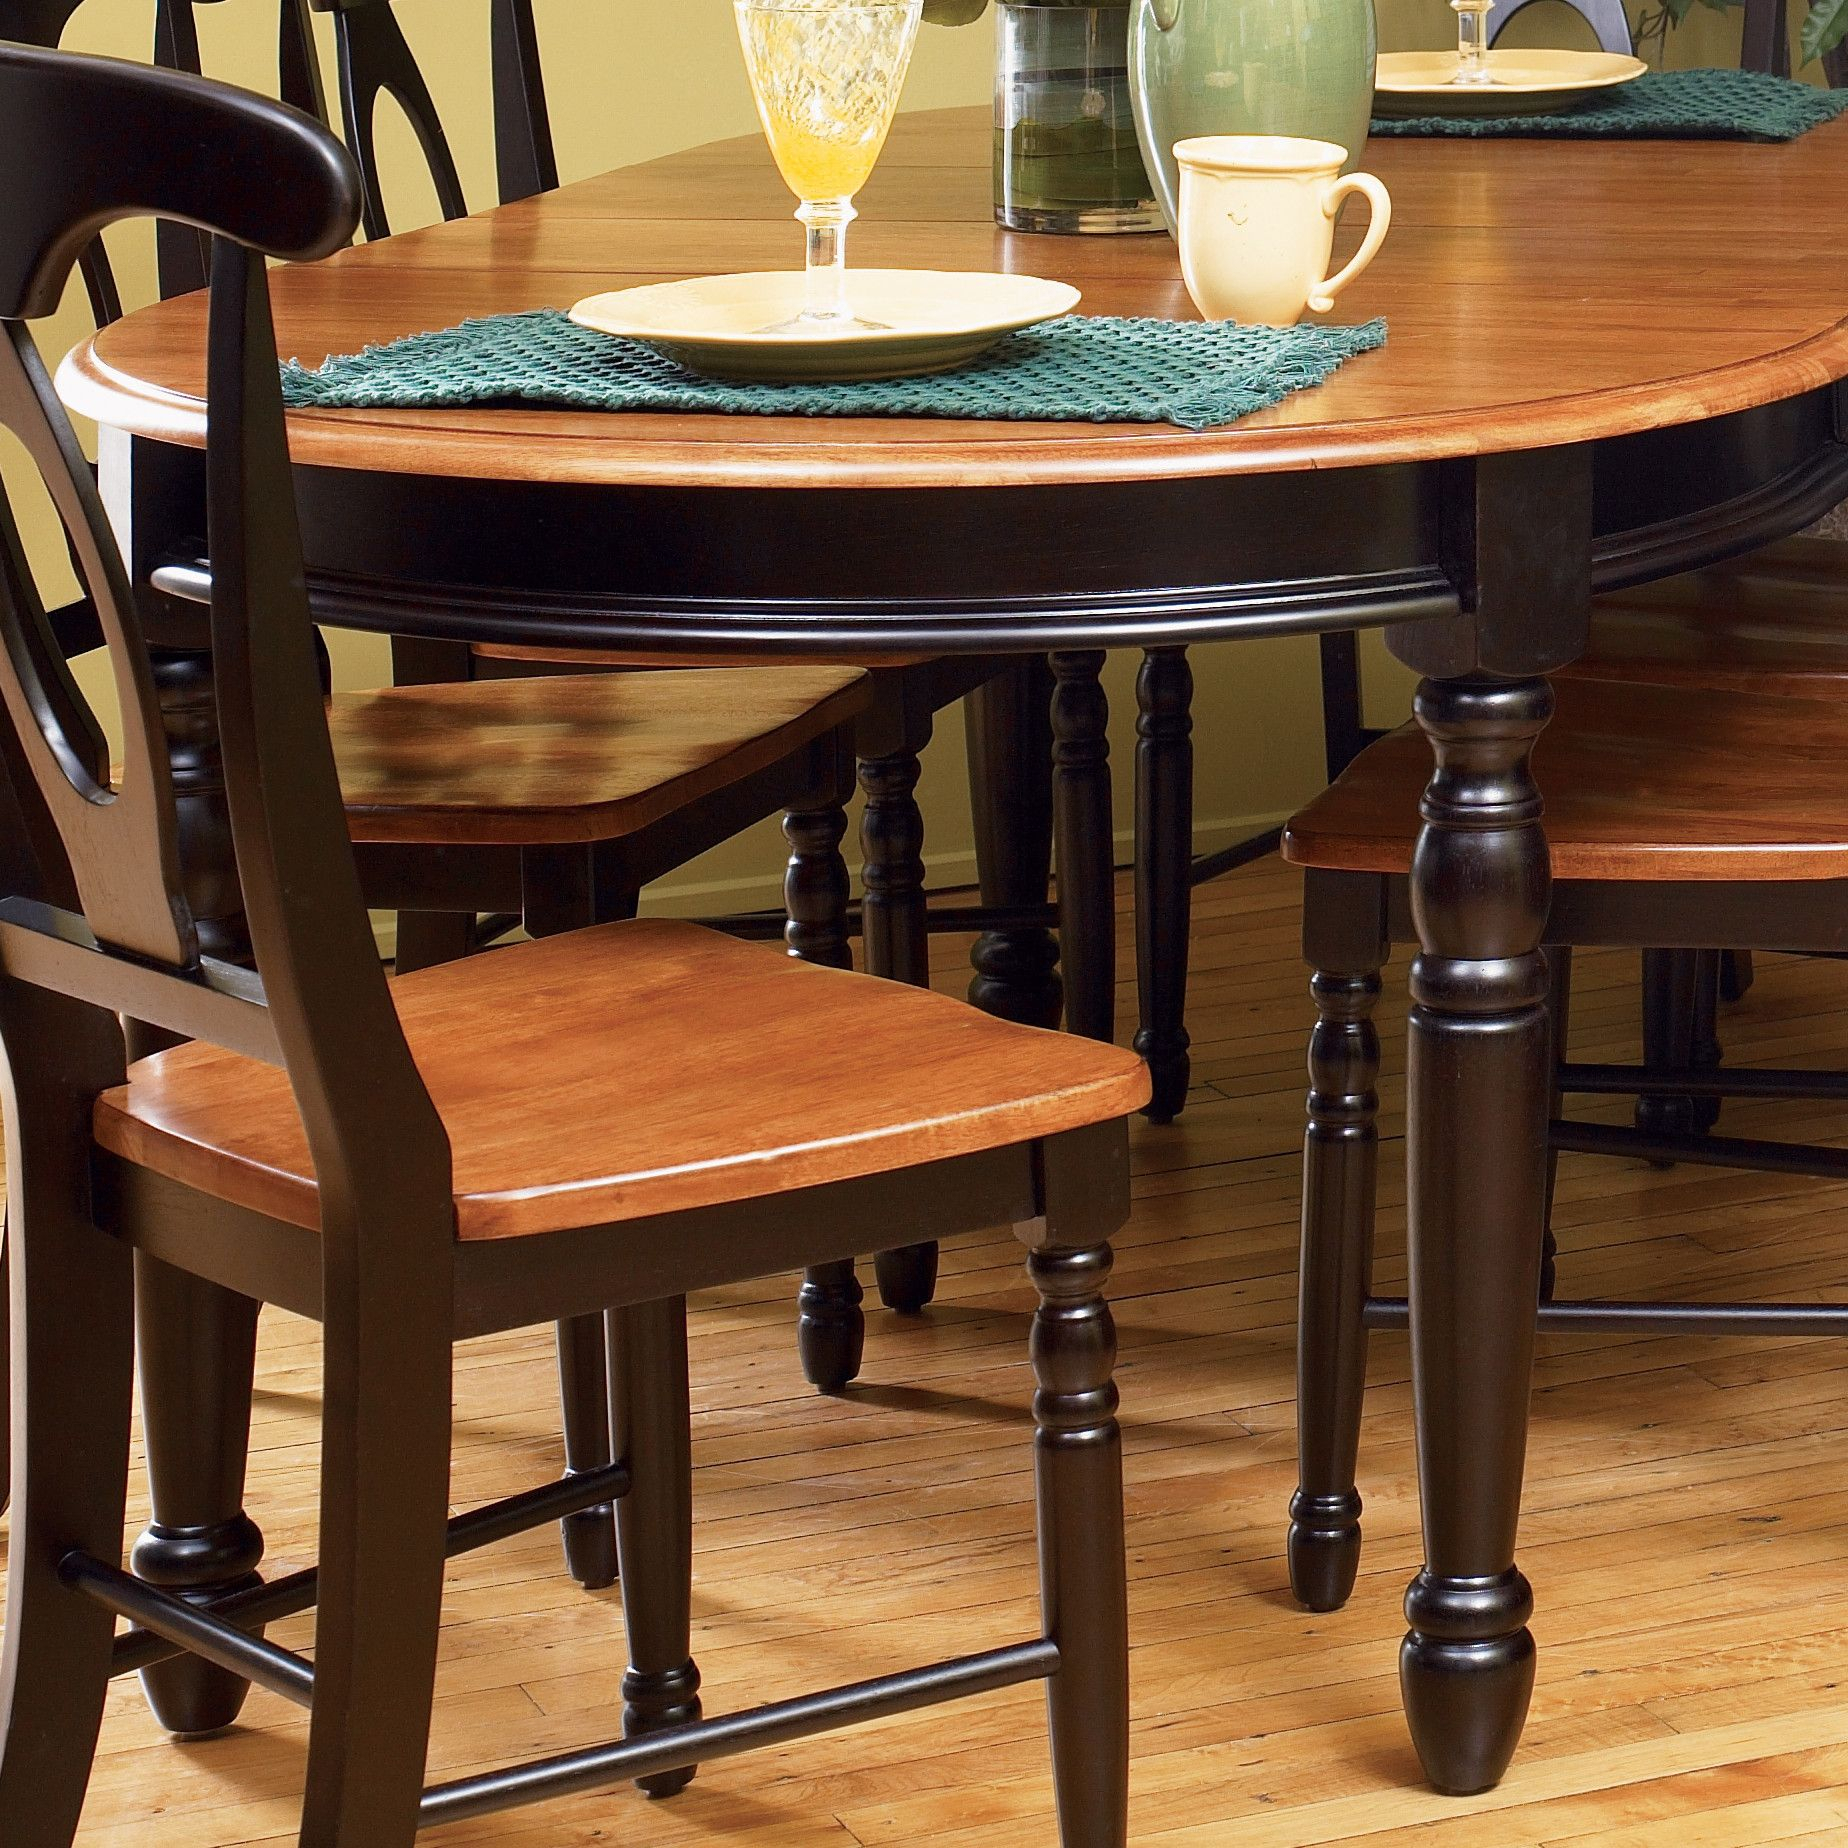 British Isles Dining Table | Wayfair (With Images) | Oval Pertaining To Most Current Keown 43'' Solid Wood Dining Tables (View 9 of 15)